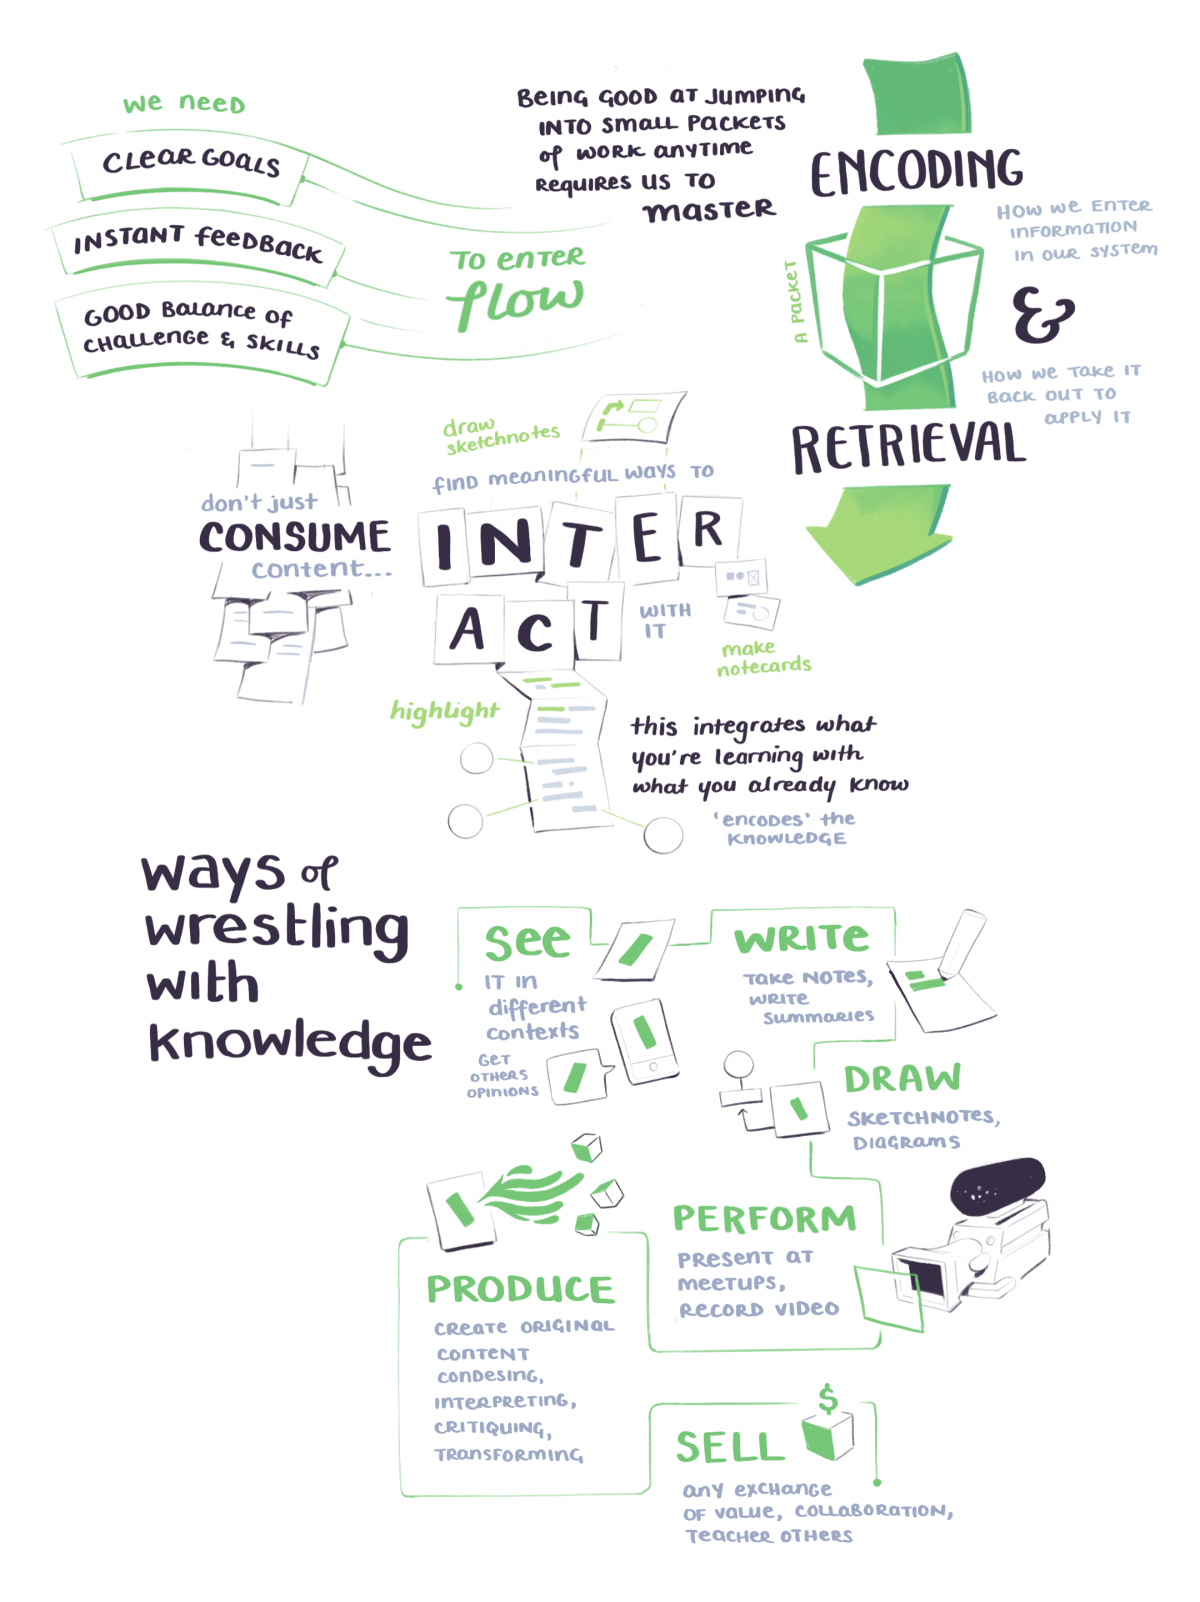 BASB sketchnotes on wrestling with knowledge by interacting with it in meanginful ways